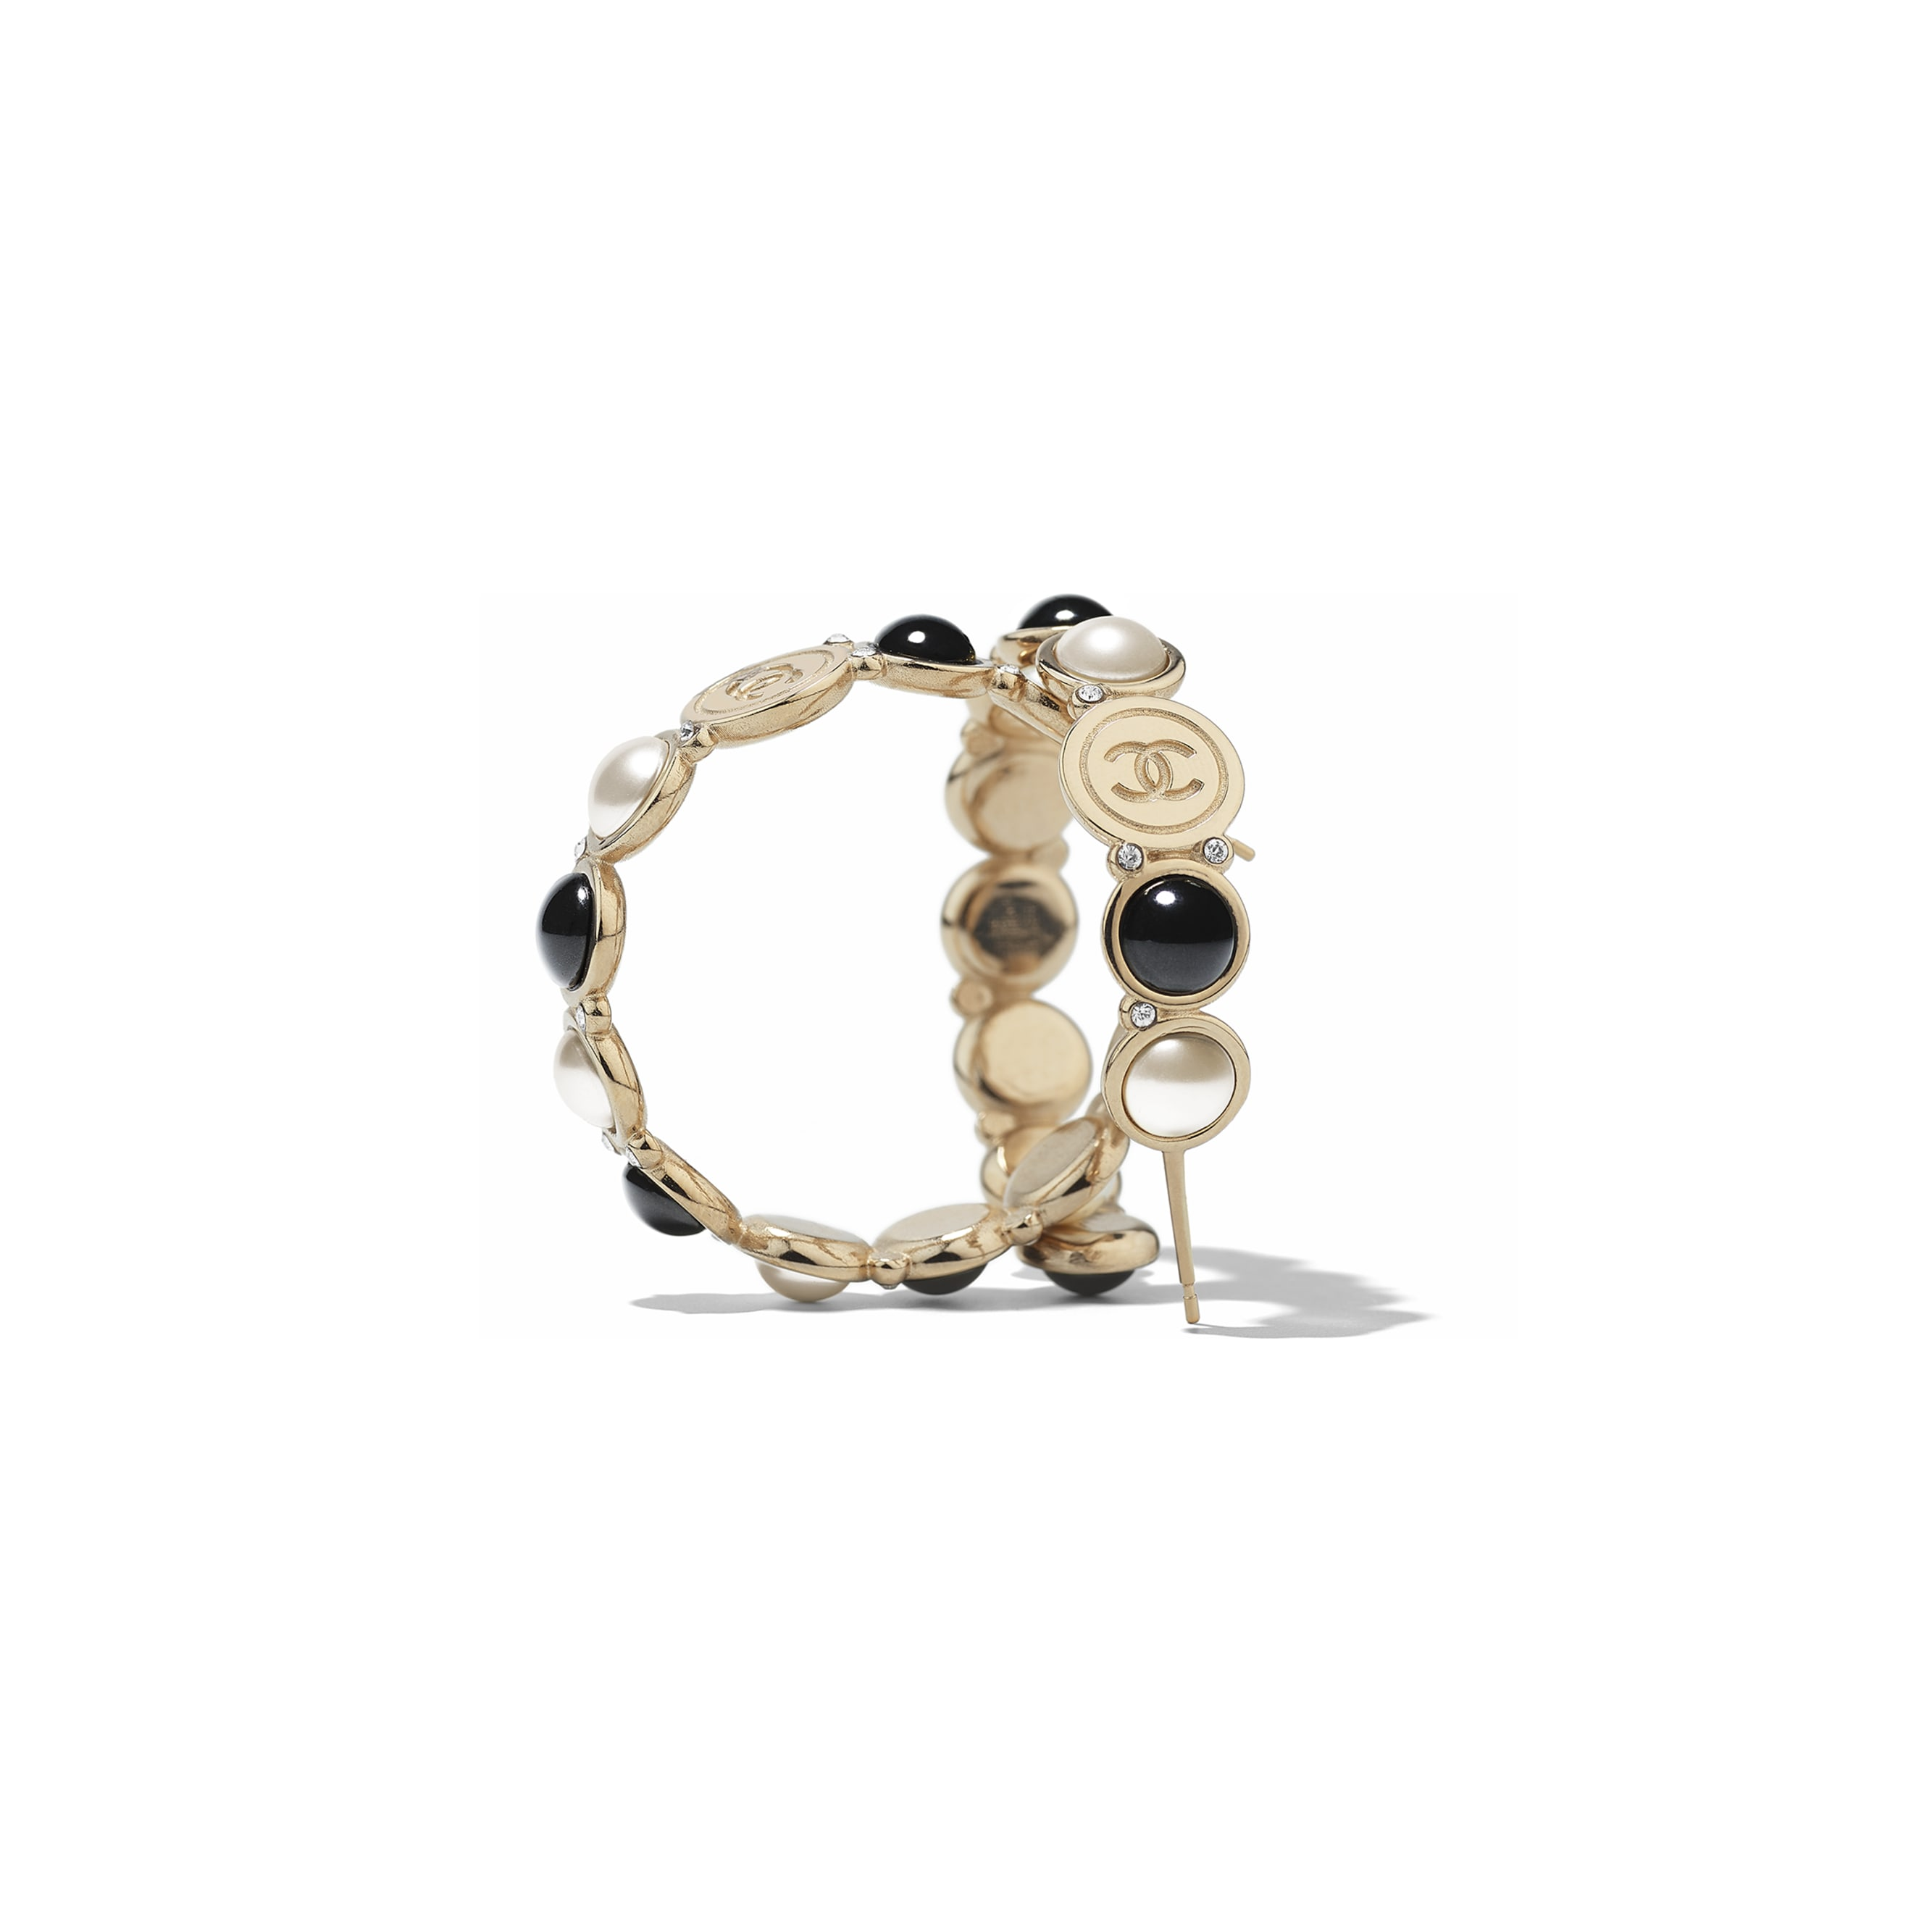 Earrings - Gold, Pearly White, Black & Crystal - Metal, Glass Pearls, Imitation Pearls & Diamanté - Alternative view - see standard sized version